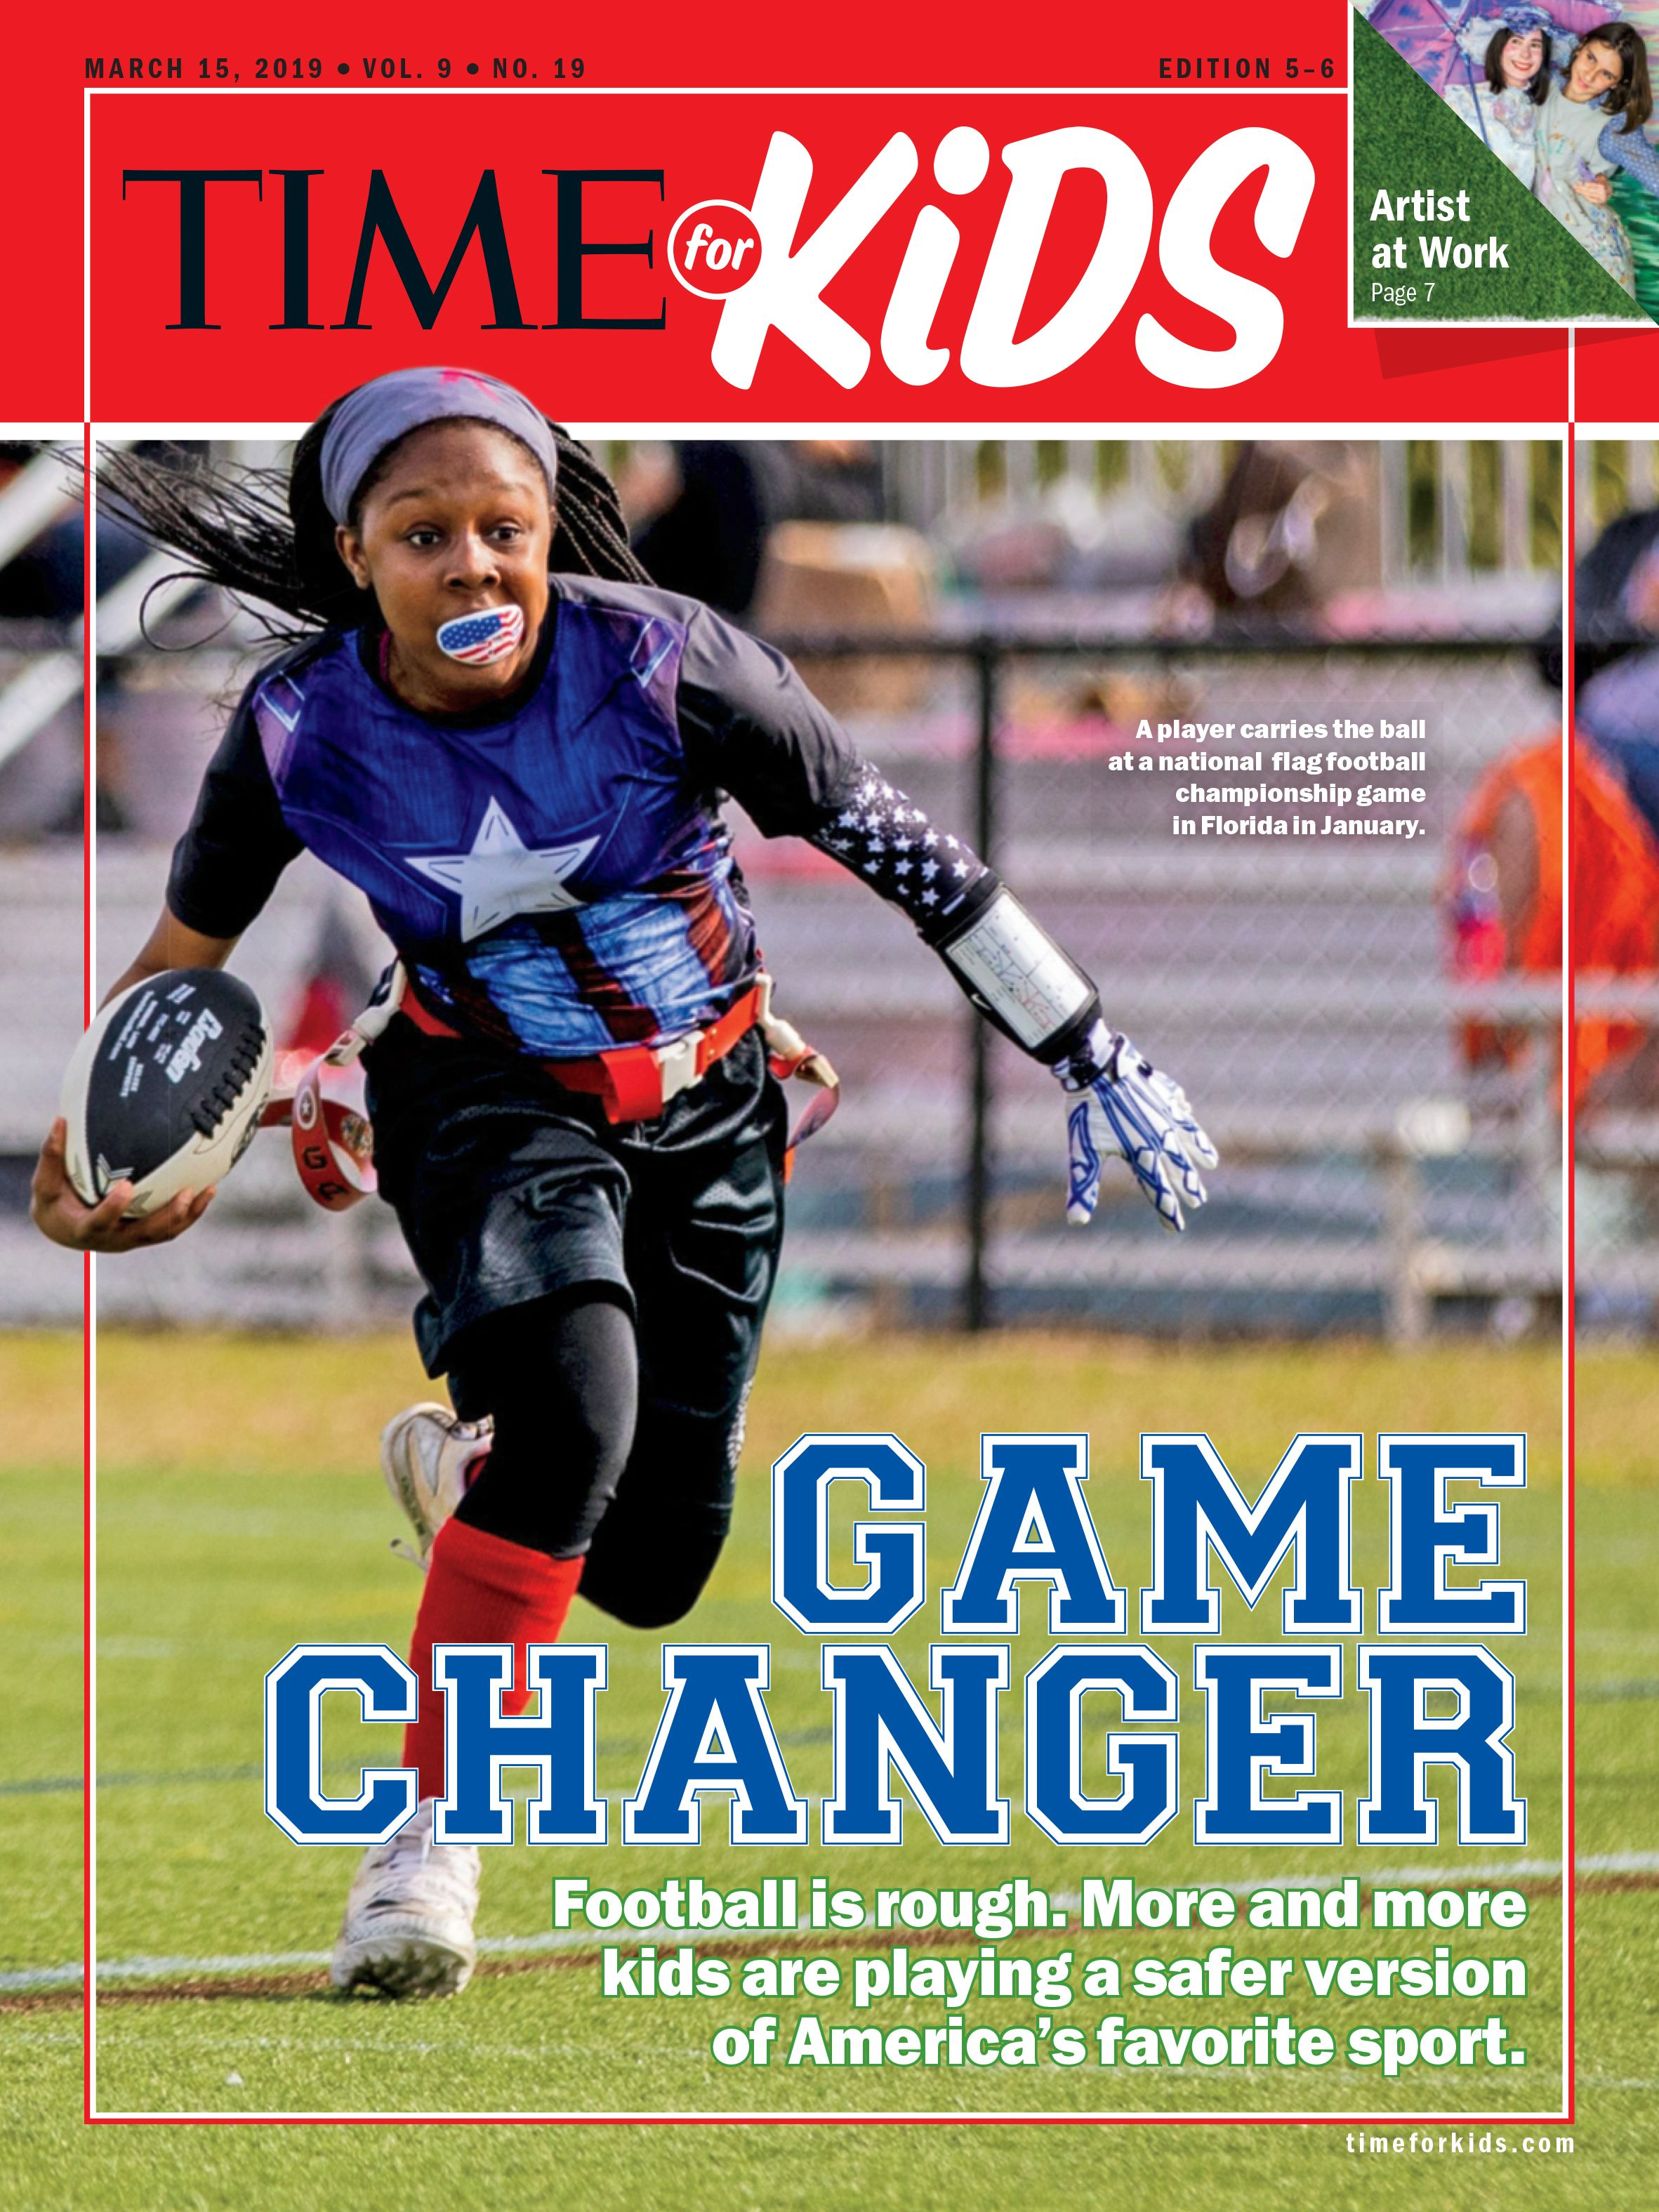 Football is rough. More and more kids are playing a safer